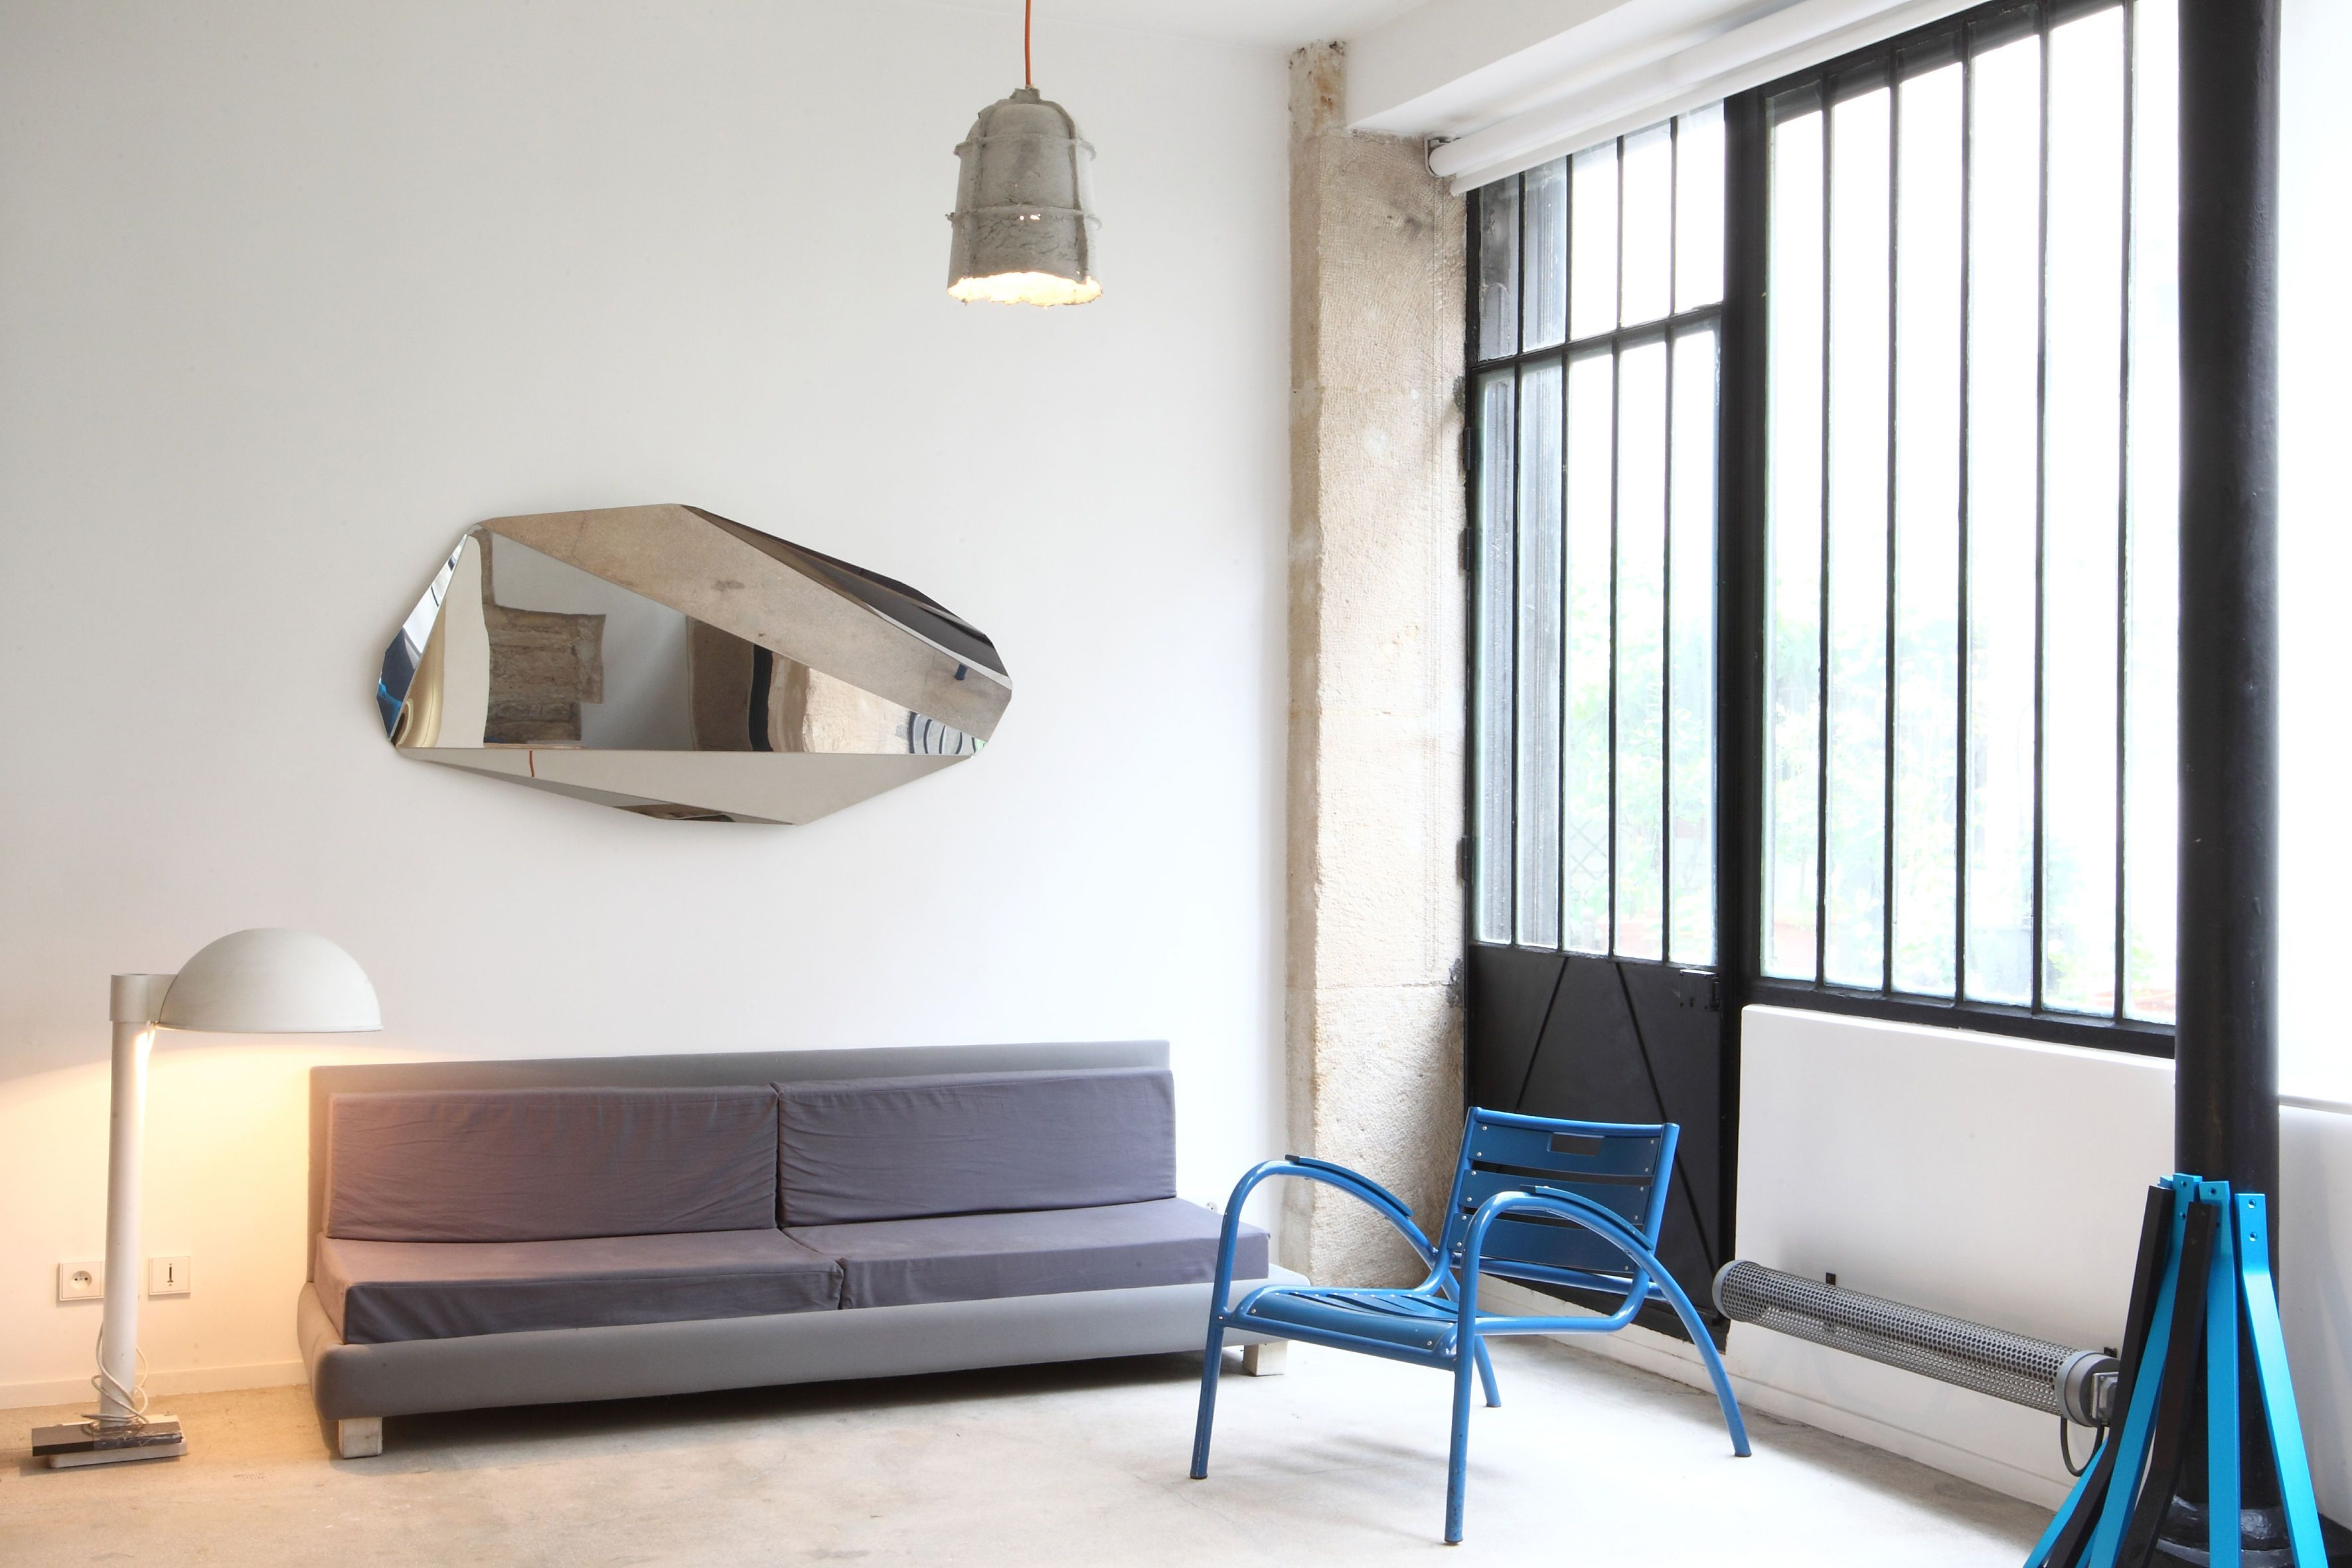 Pin by Maison Créative on Miroir | Mirror | Mirror, Design ...